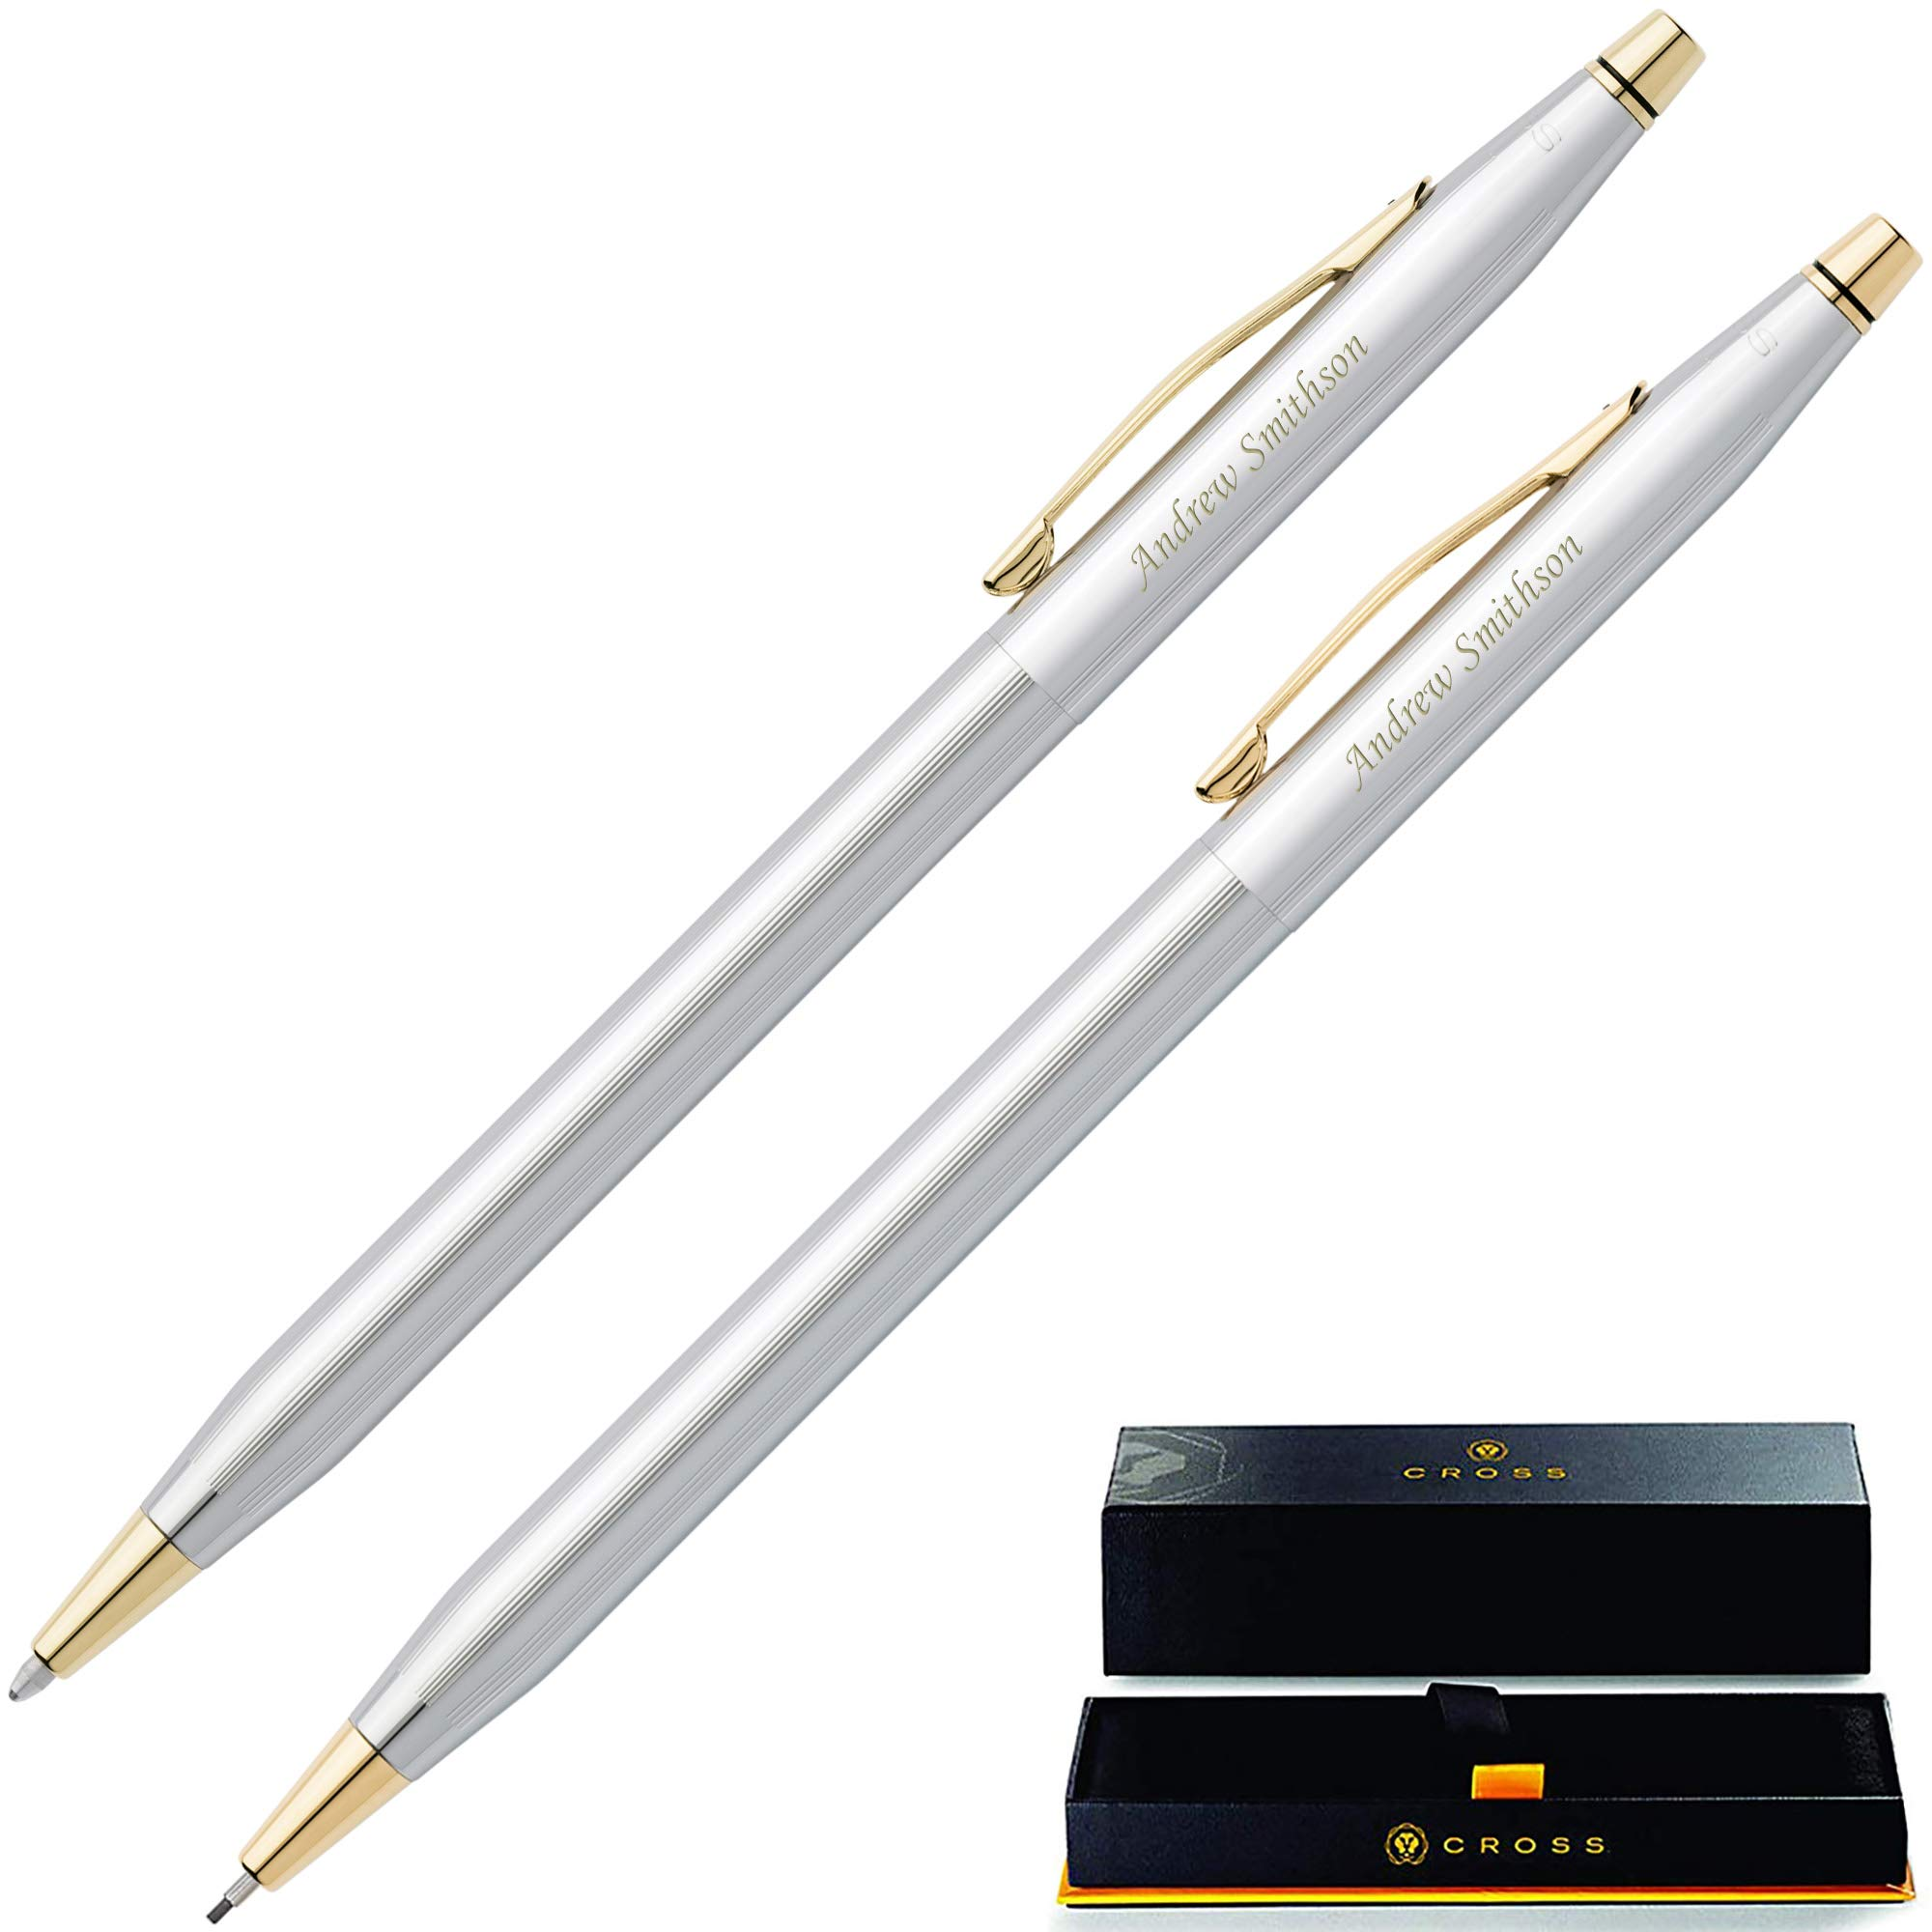 Engraved Cross Pen Set   Personalized Cross Classic Century Medalist Pen & Pencil Set 330105. Custom Engraved With Name or Message By Dayspring Pens.